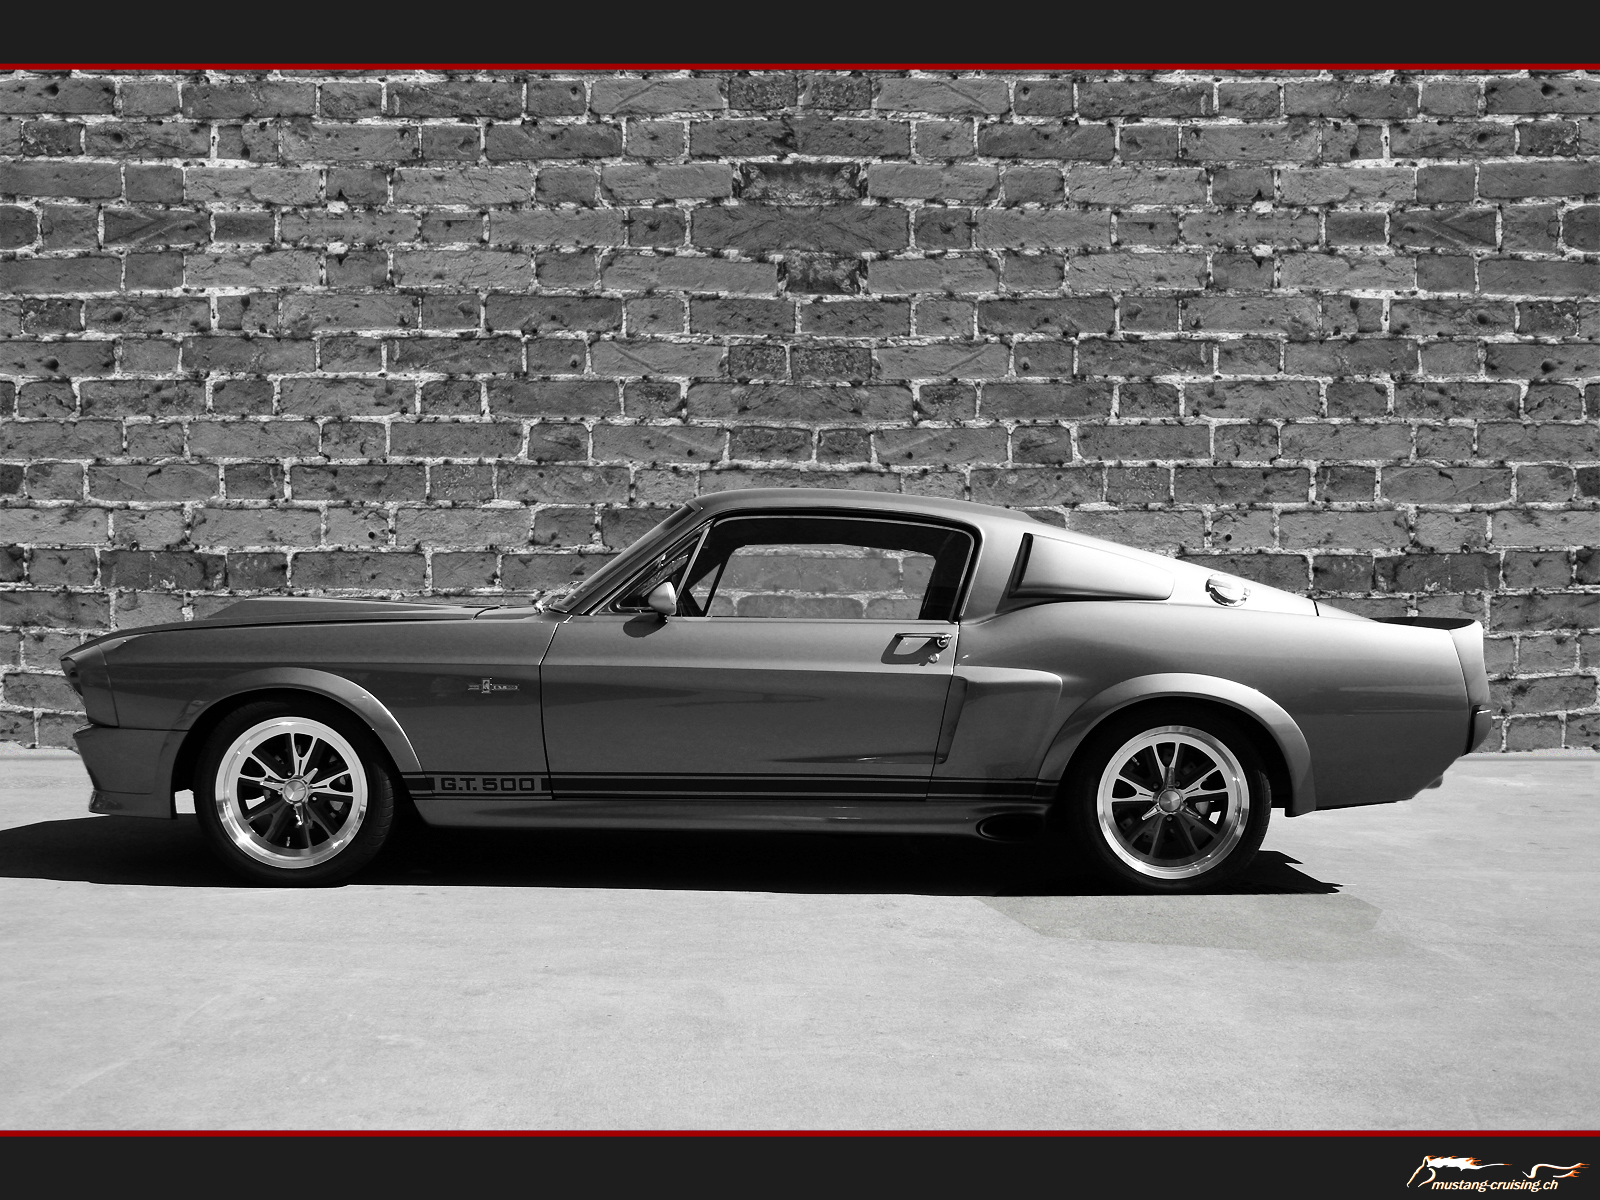 http://www.mustang-cruising.ch/cmine/albums/wallpapers/1964-1973/mustang-1967eleanor2.jpg